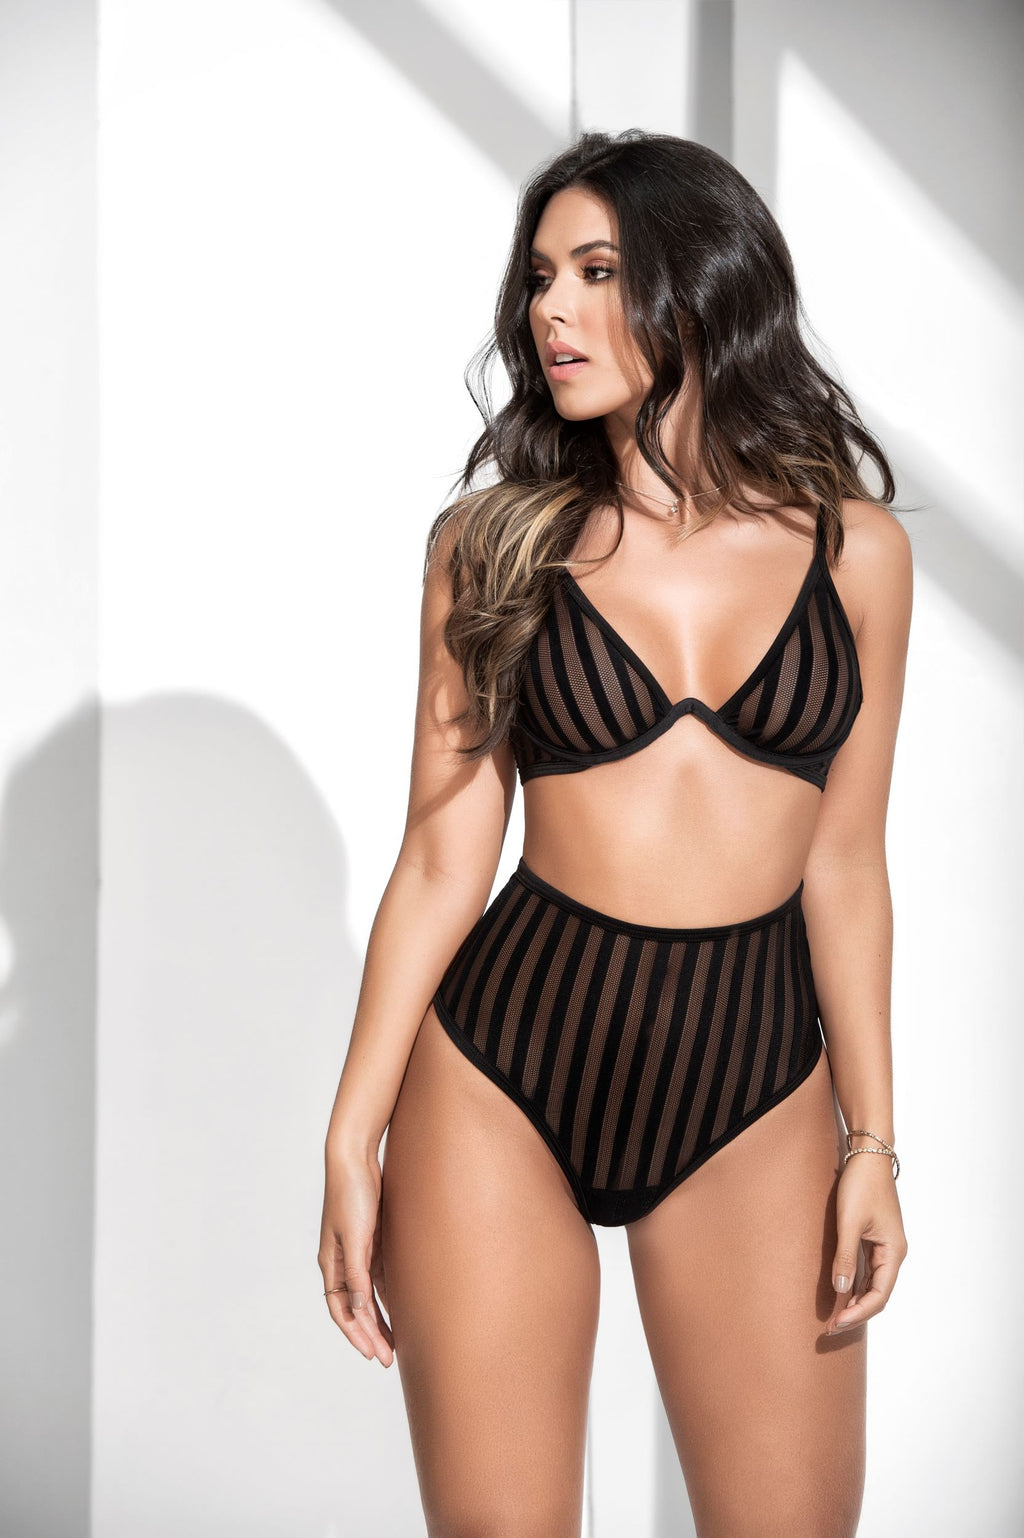 Classy Black Striped Two Piece Sheer Mesh Lingerie Set